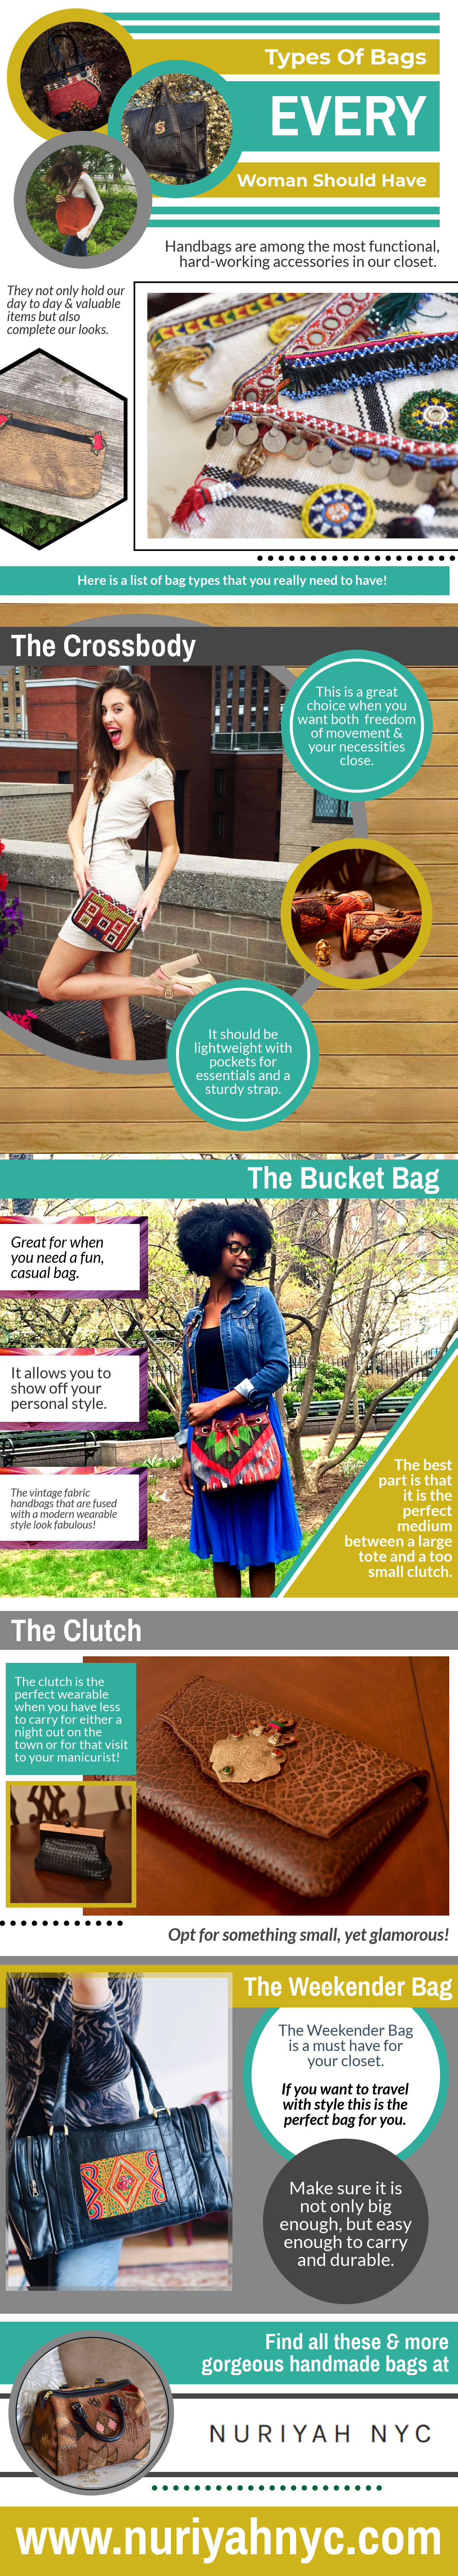 Types of Bags Every Woman Should Have